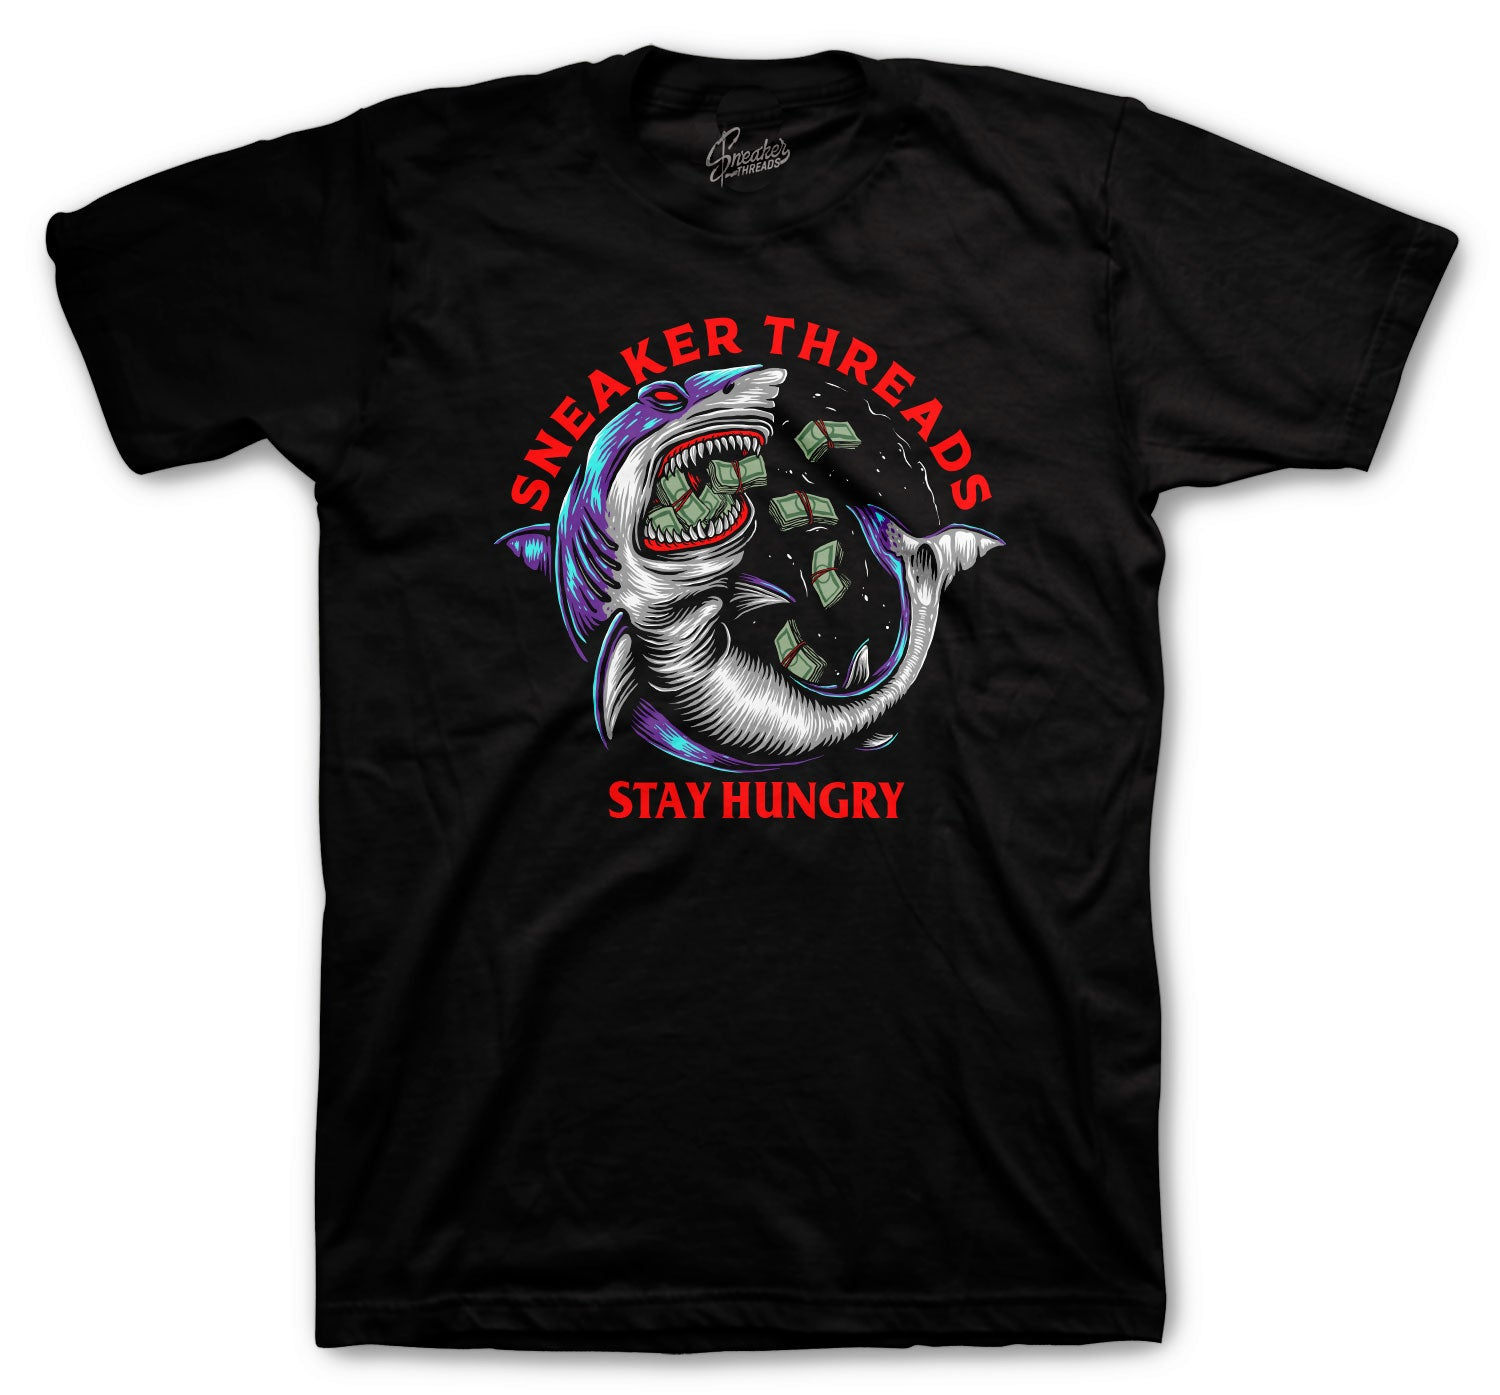 Jordan 5 Top 3 Stay Hungry Shirt